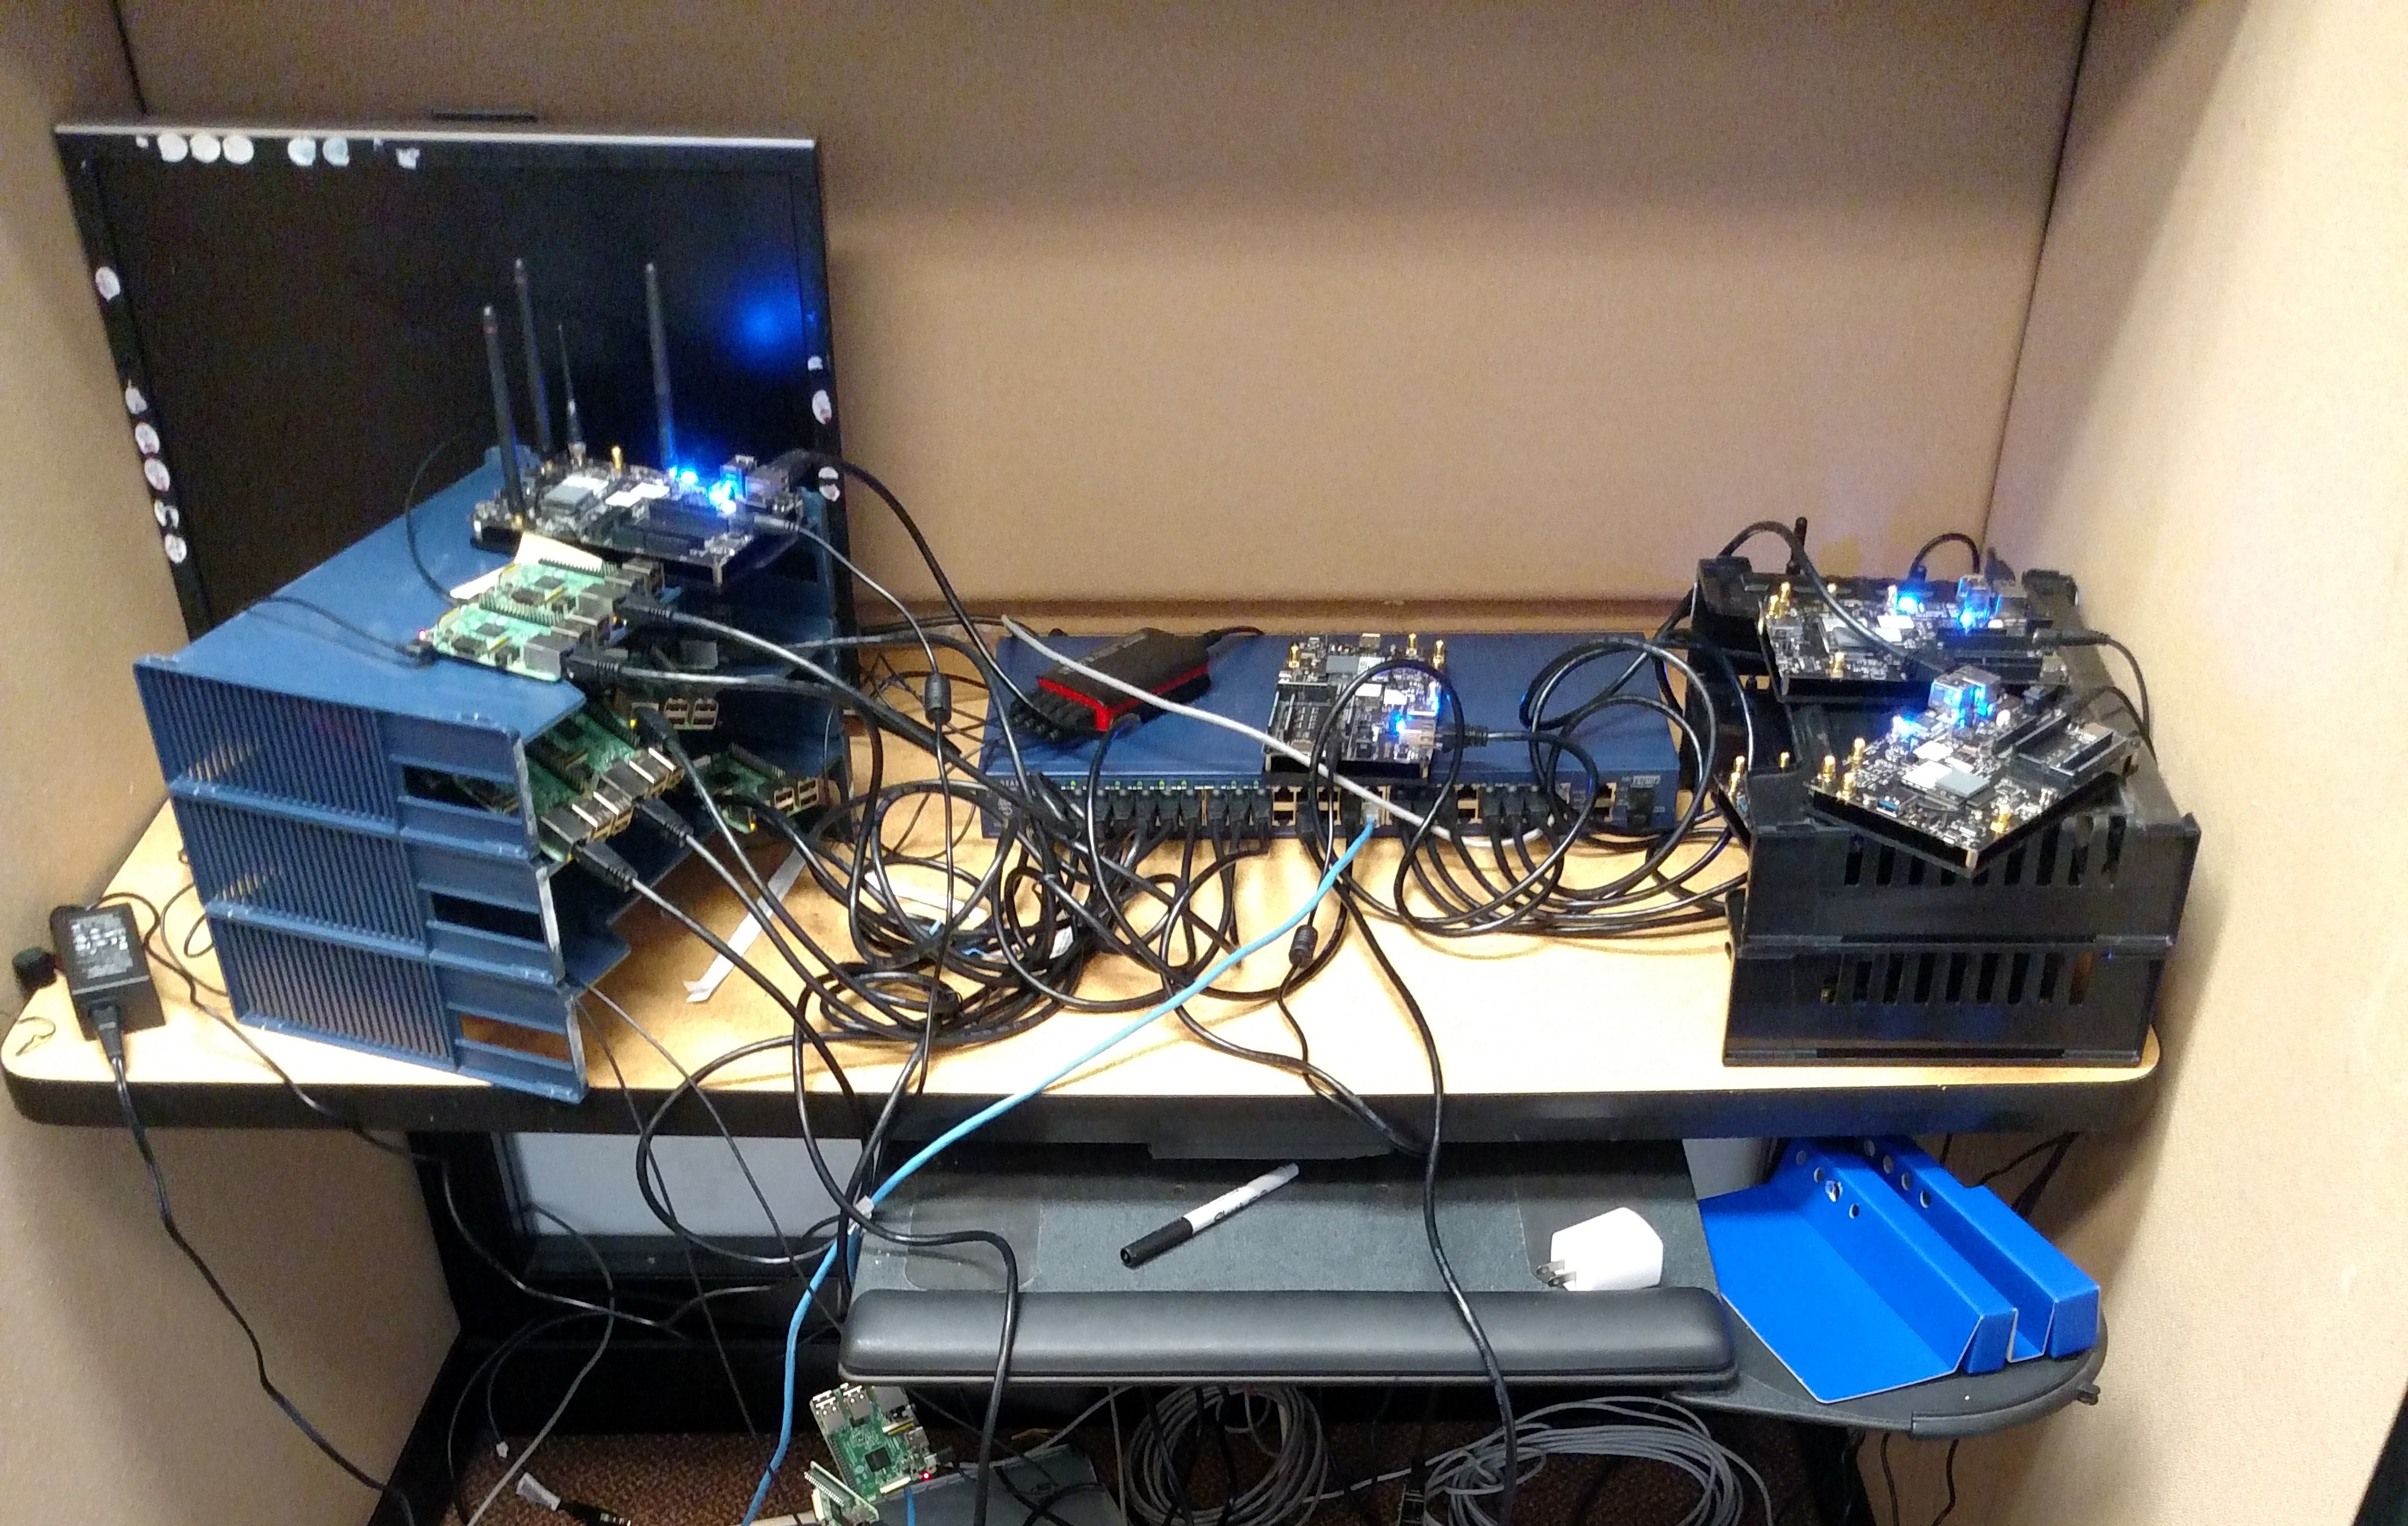 Cluster of Raspberry Pis